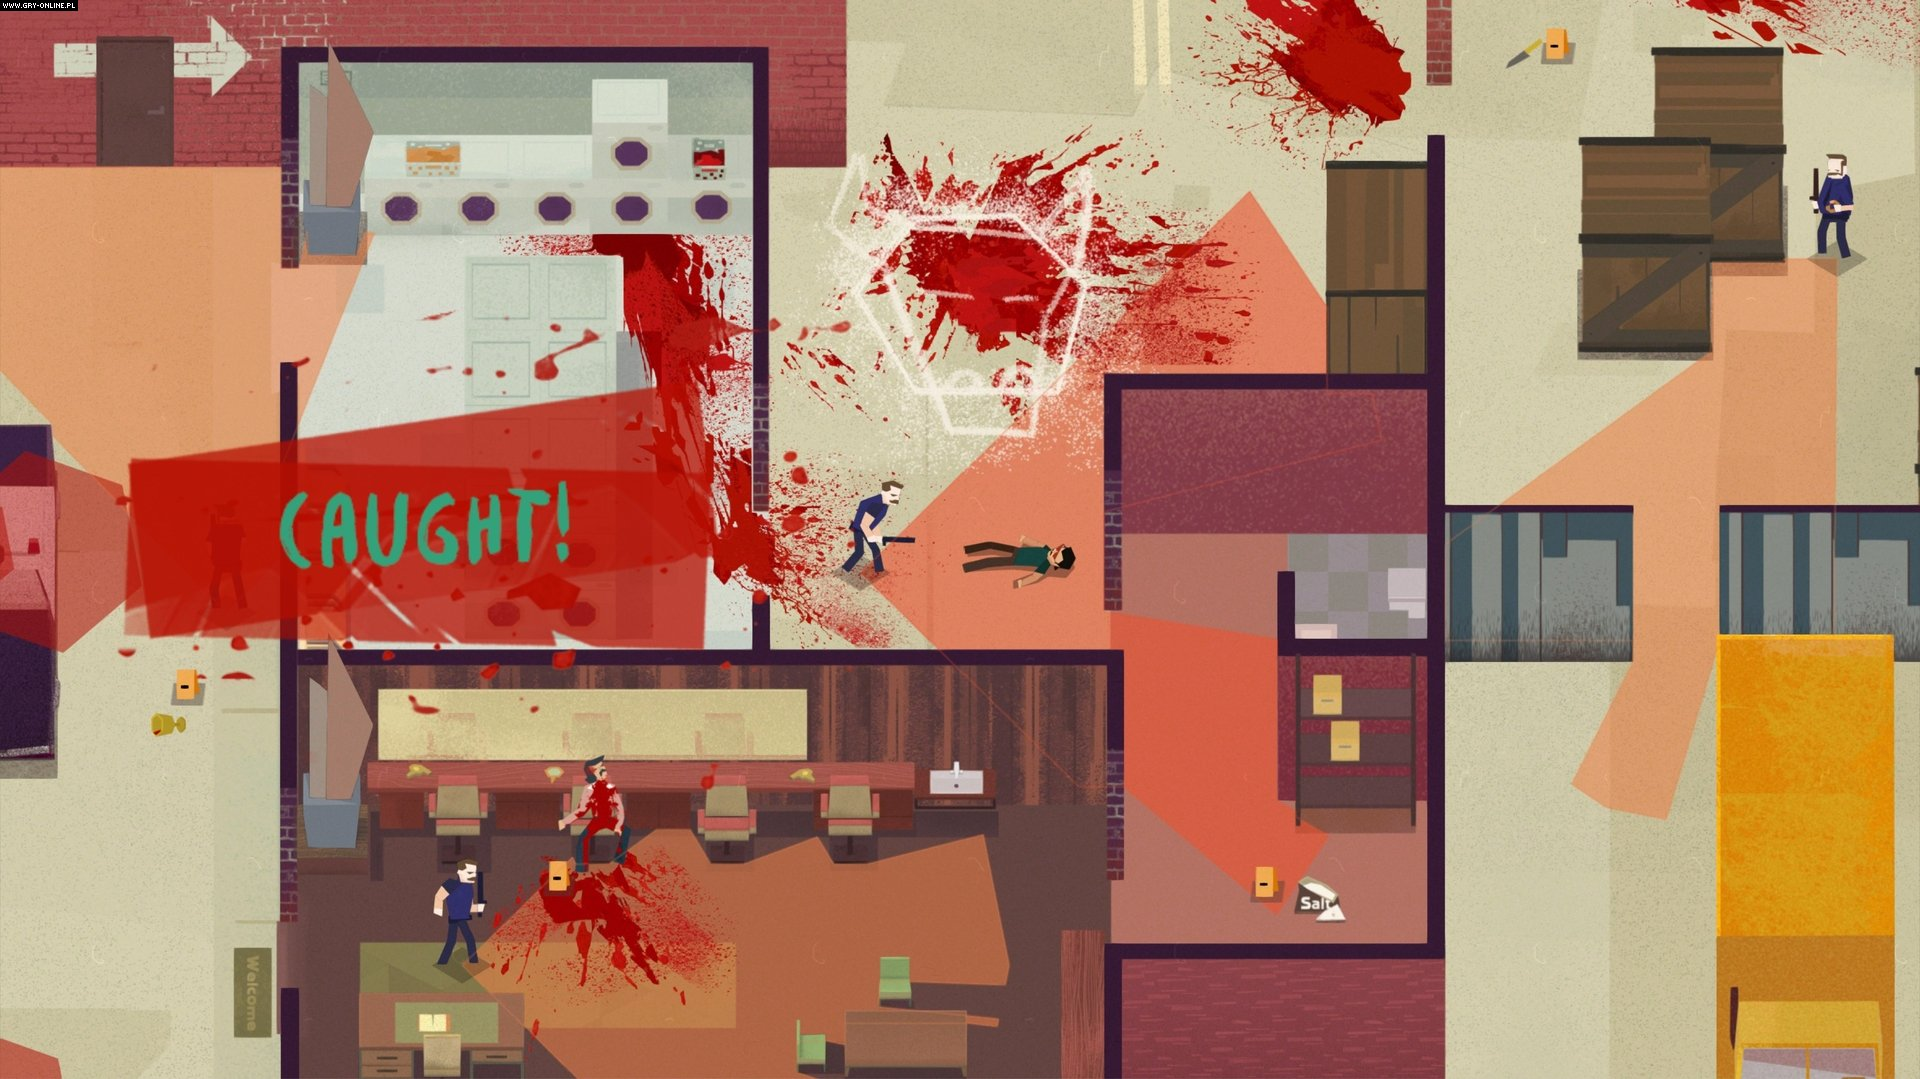 Serial Cleaner PC, PS4, XONE, Switch Gry Screen 3/28, iFun4all / Draw Distance, Curve Digital